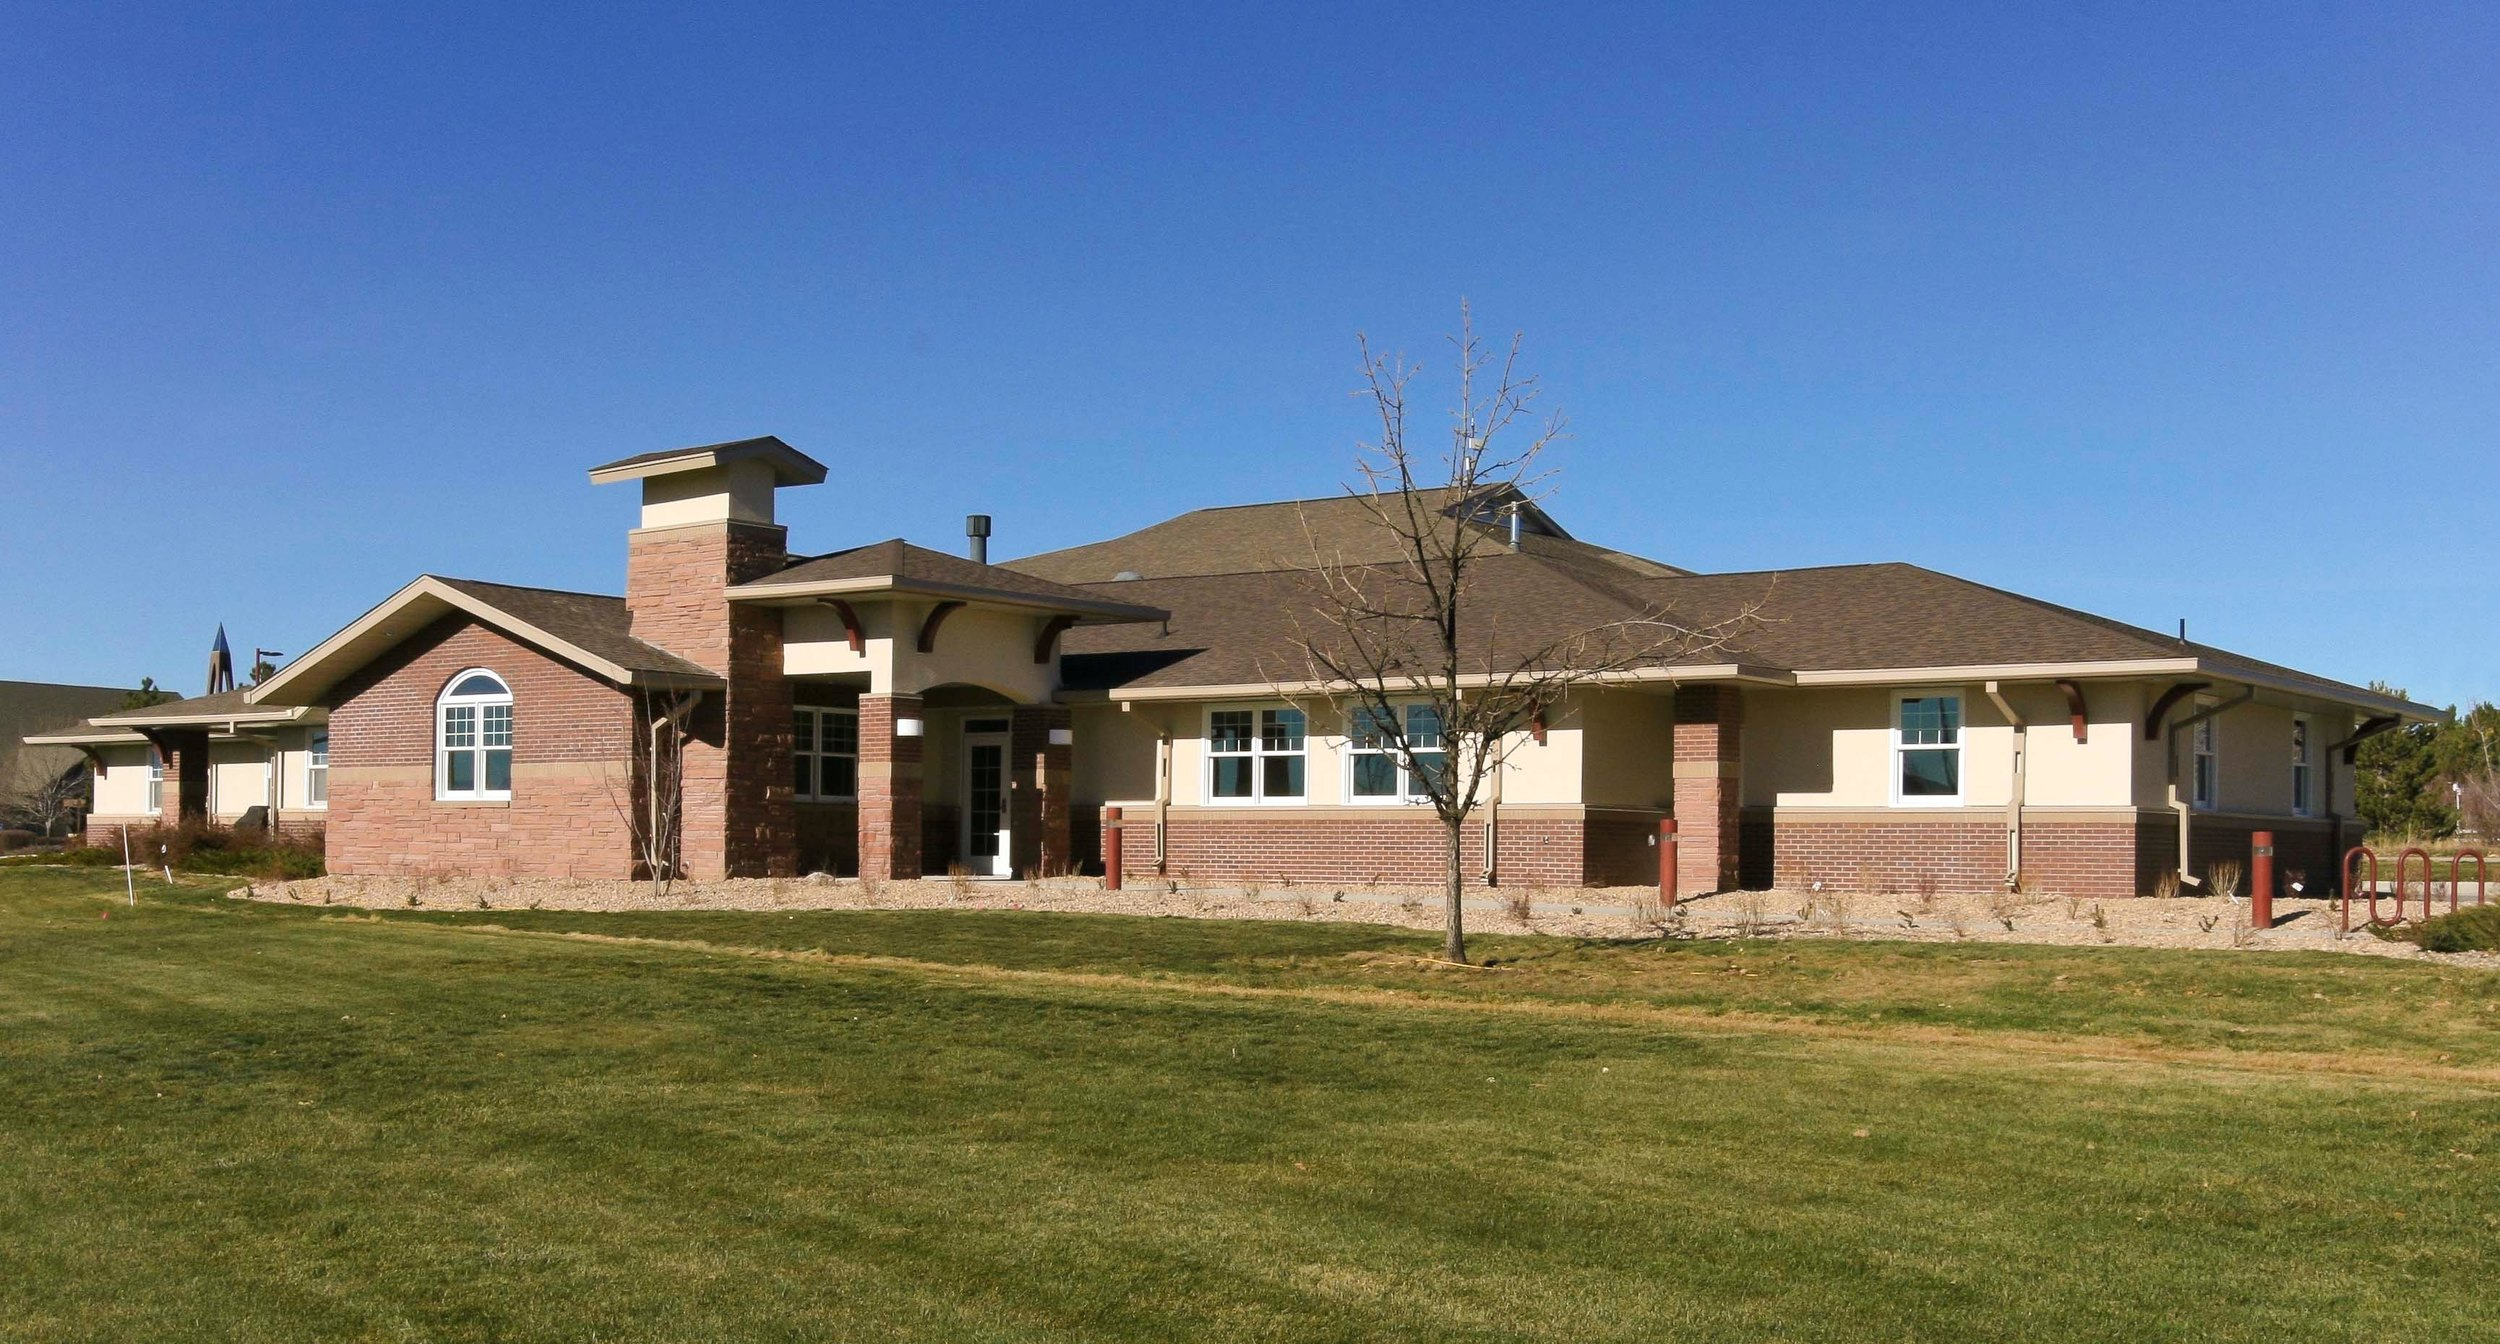 LOVELAND FIRE STATION ADDITION - A 4,199 SF renovation and addition to an existing 8,935 SF 1-story fire station including offices, exercise rooms, kitchen and bath remodel, and main entryway.